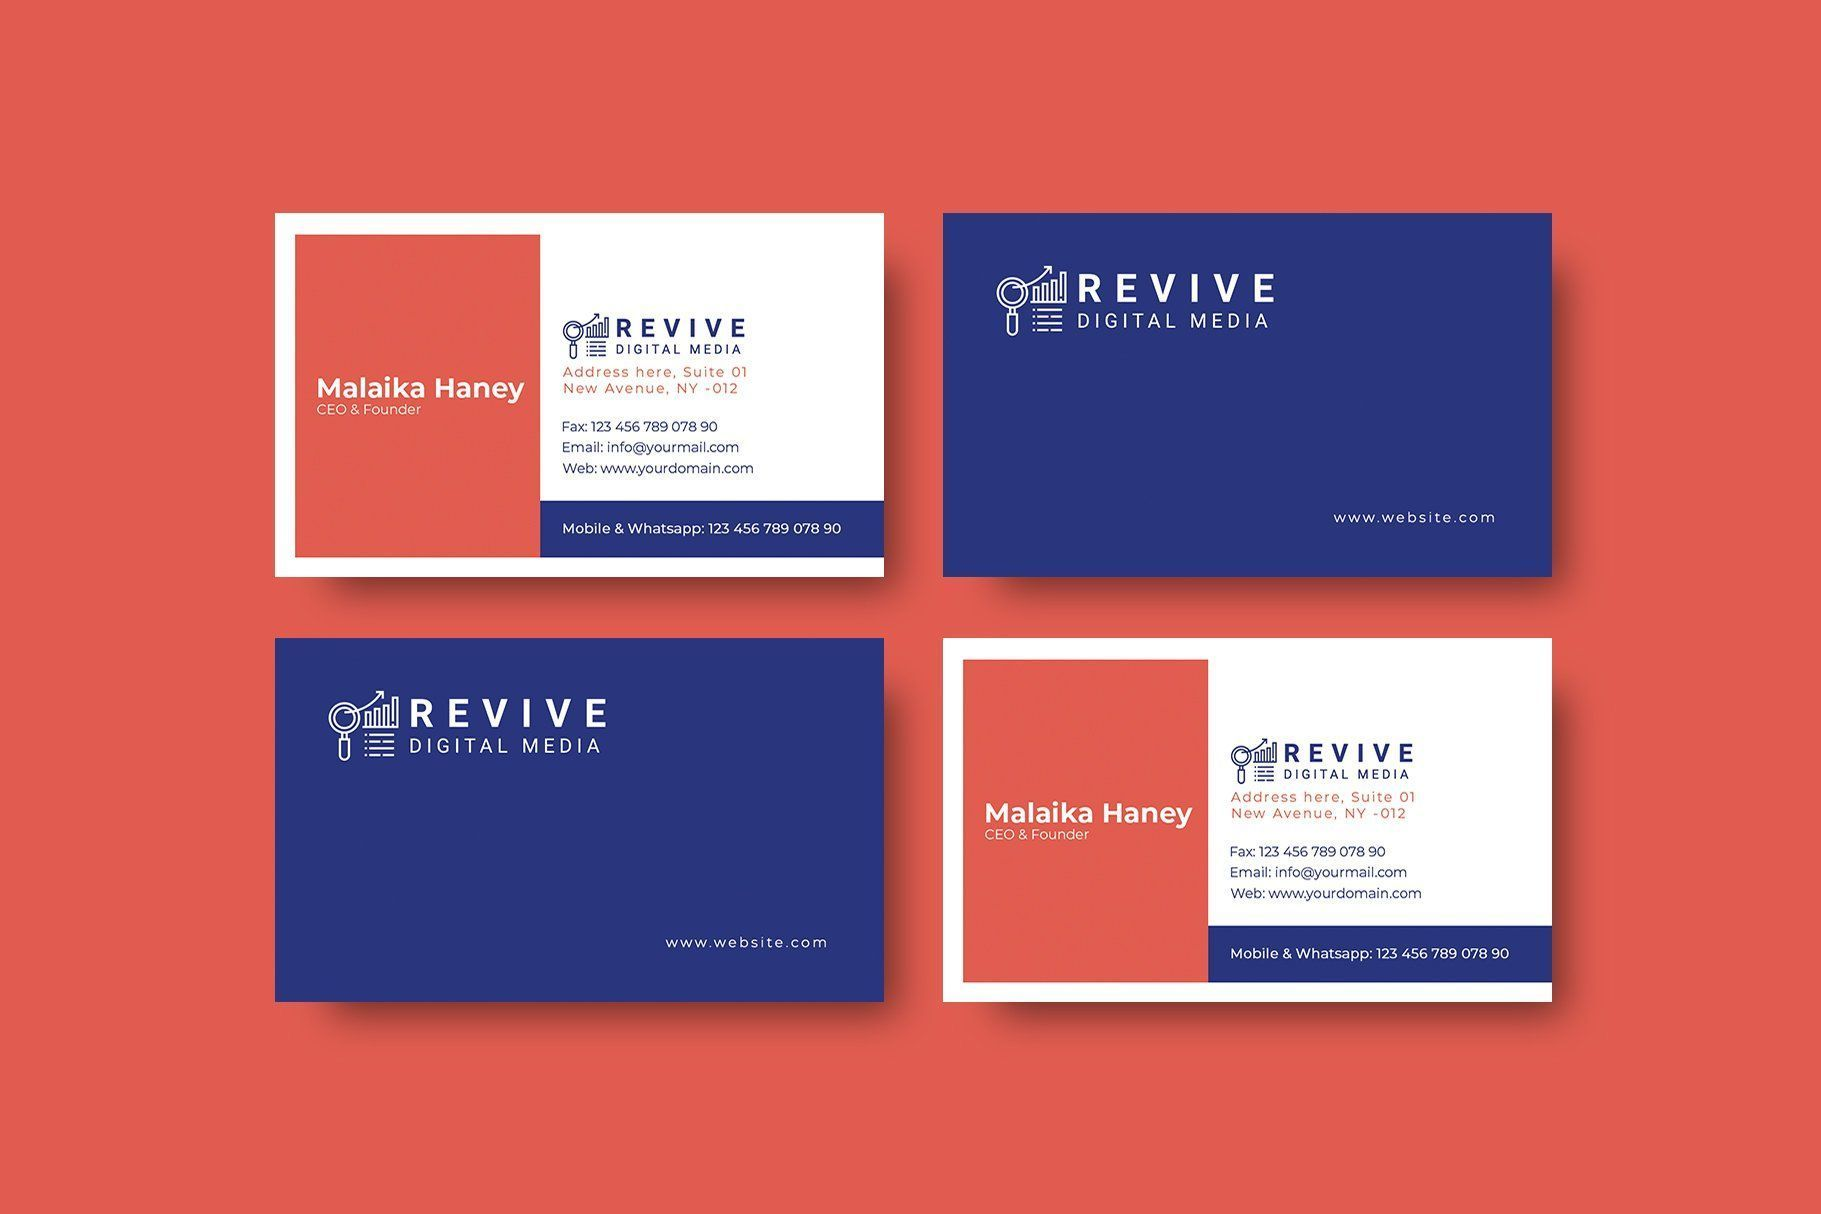 Digital Media Business Card Template This Business Card Is Ideal For Digital Ag Business Card Digital